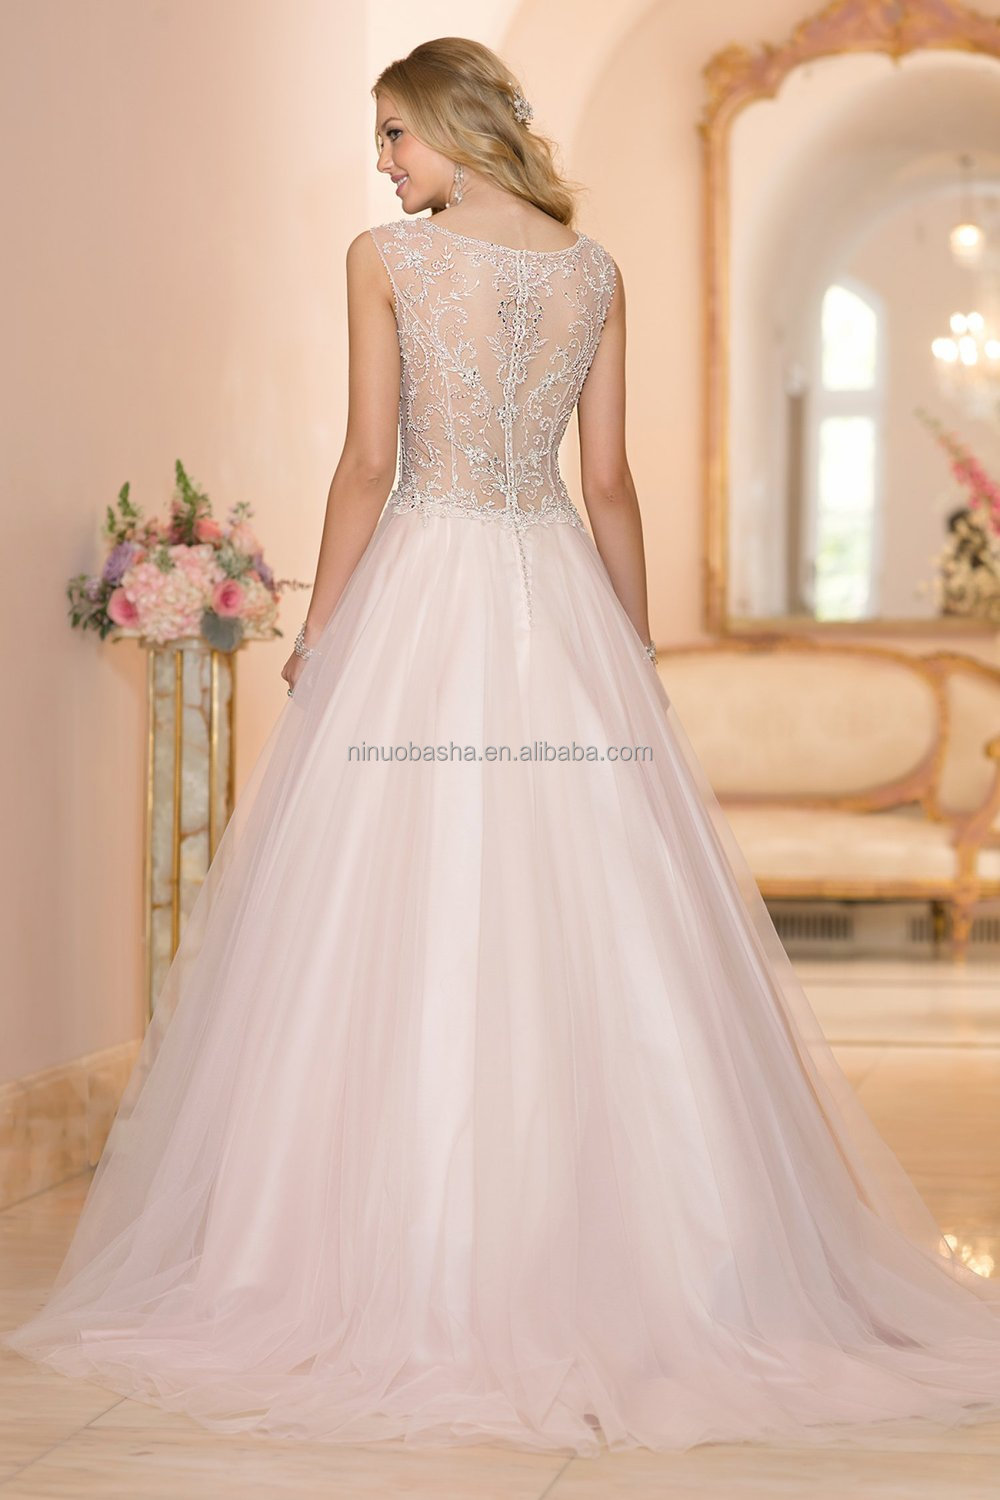 Latest Ball Gown Wedding Dress 2015 V-neck Cap Sleeve See Through ...